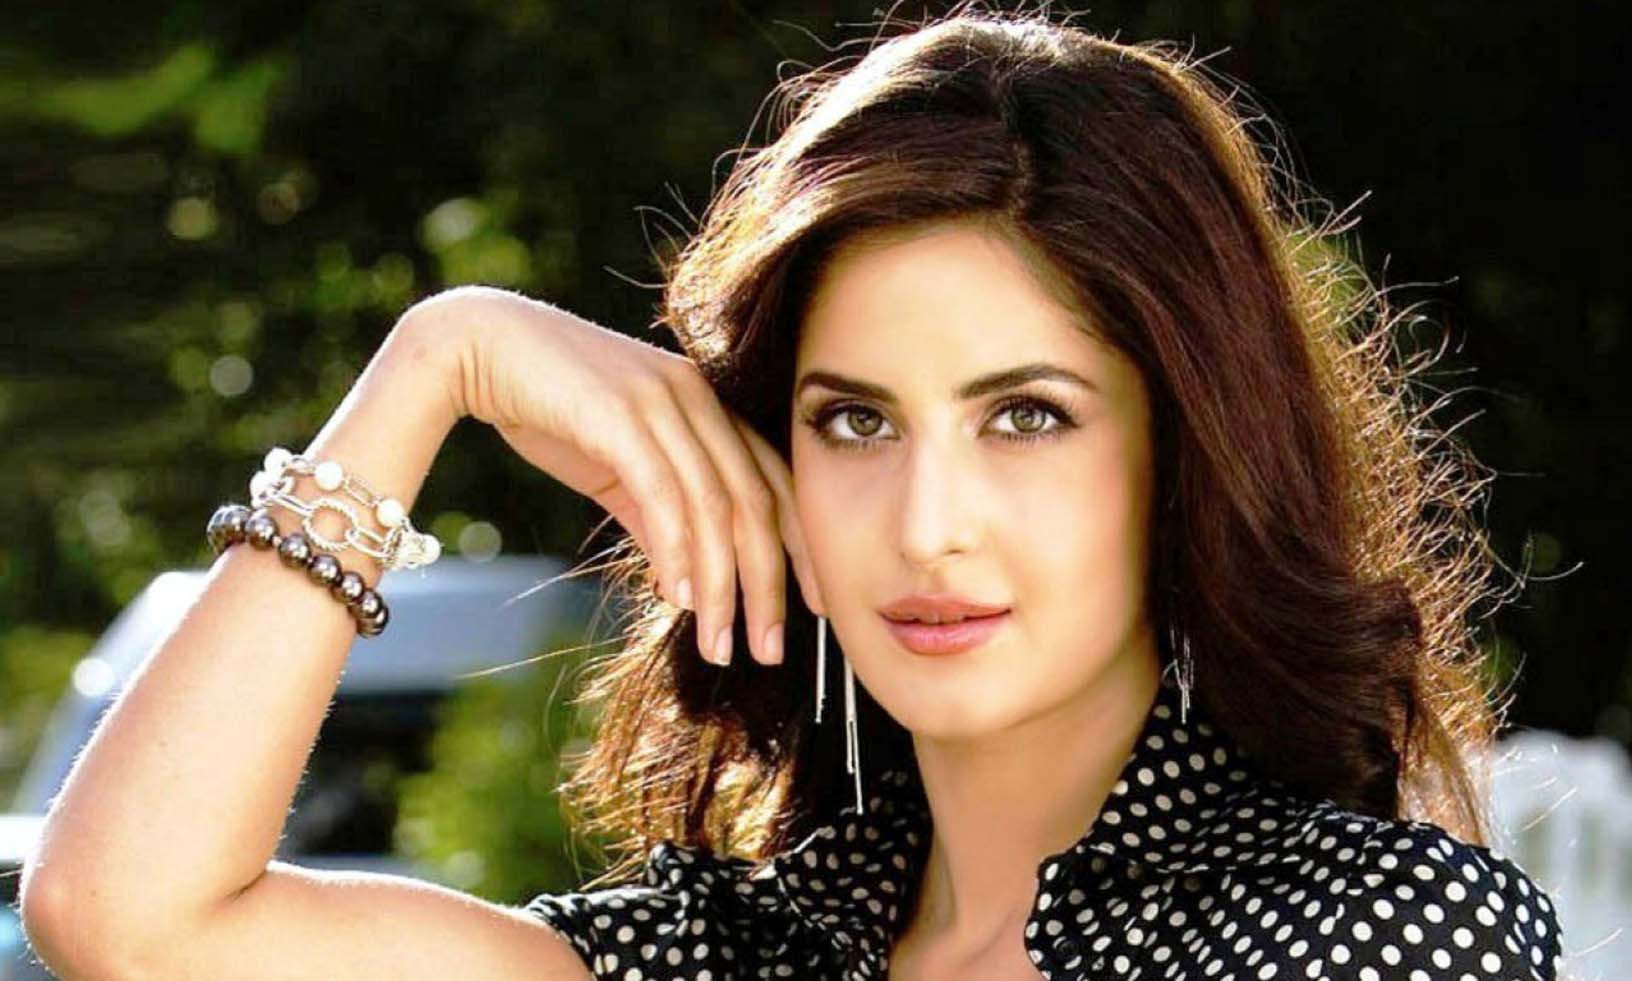 Katrina Kaif Most Attractive Wallpapers Ultra Hd 4k